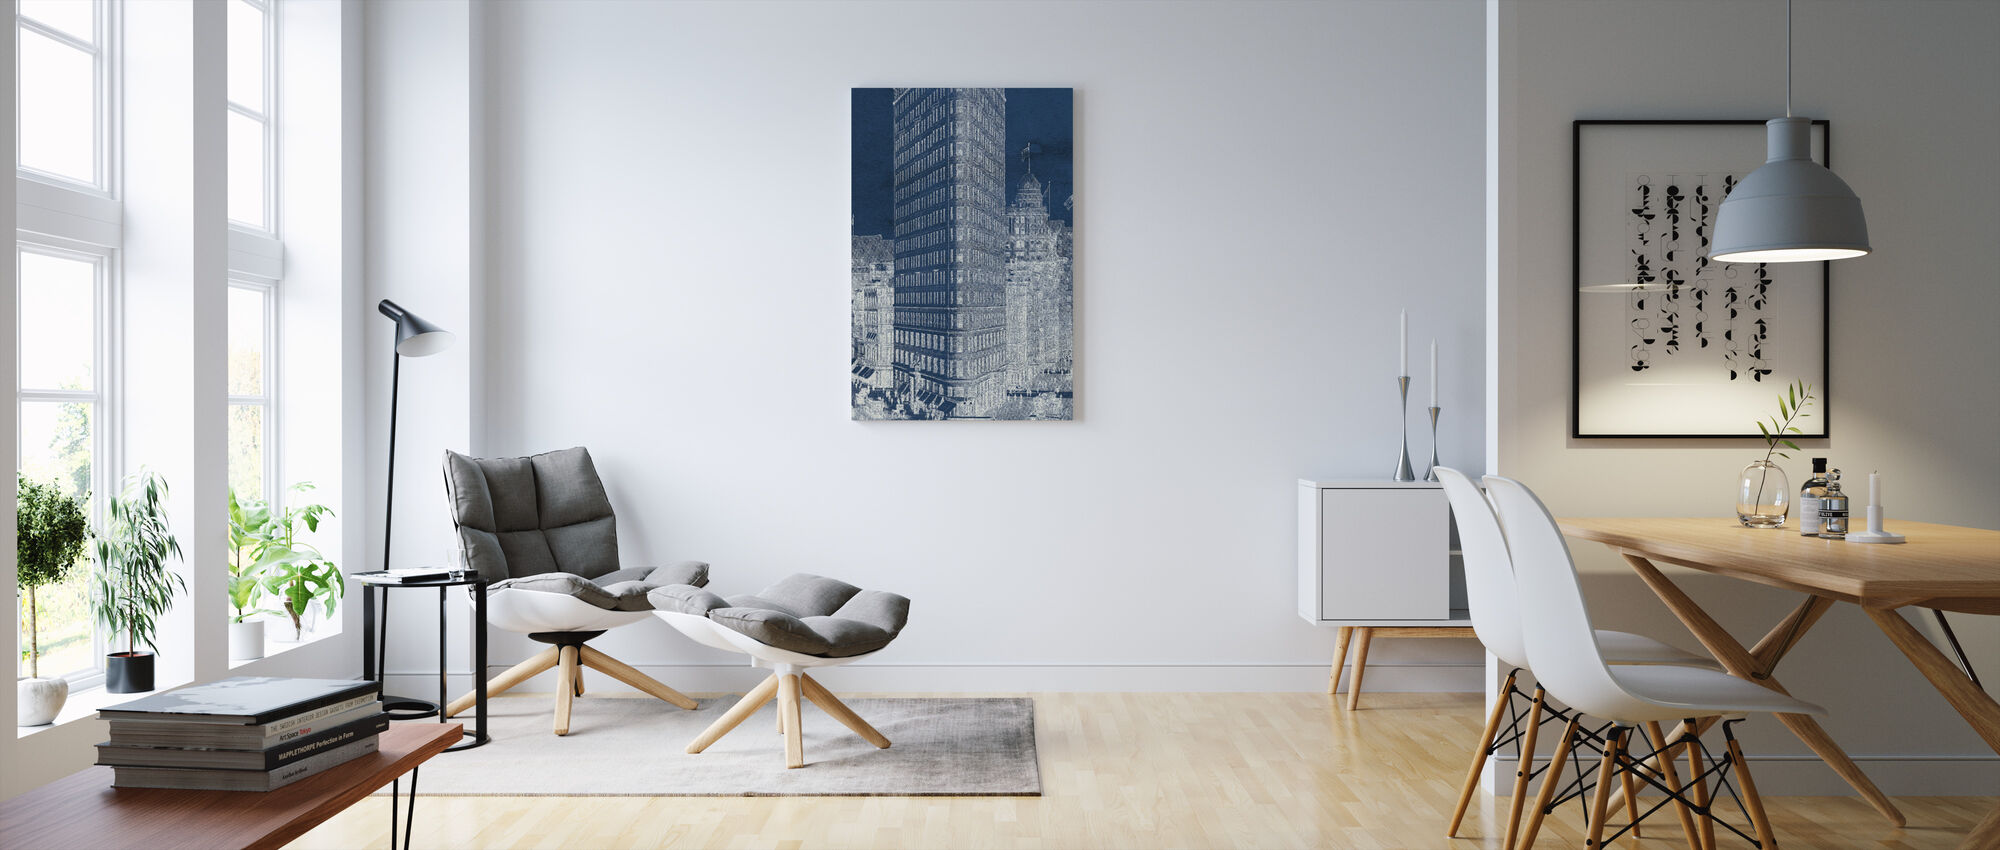 Flat Iron 1909 Blueprint Panel - Canvas print - Living Room